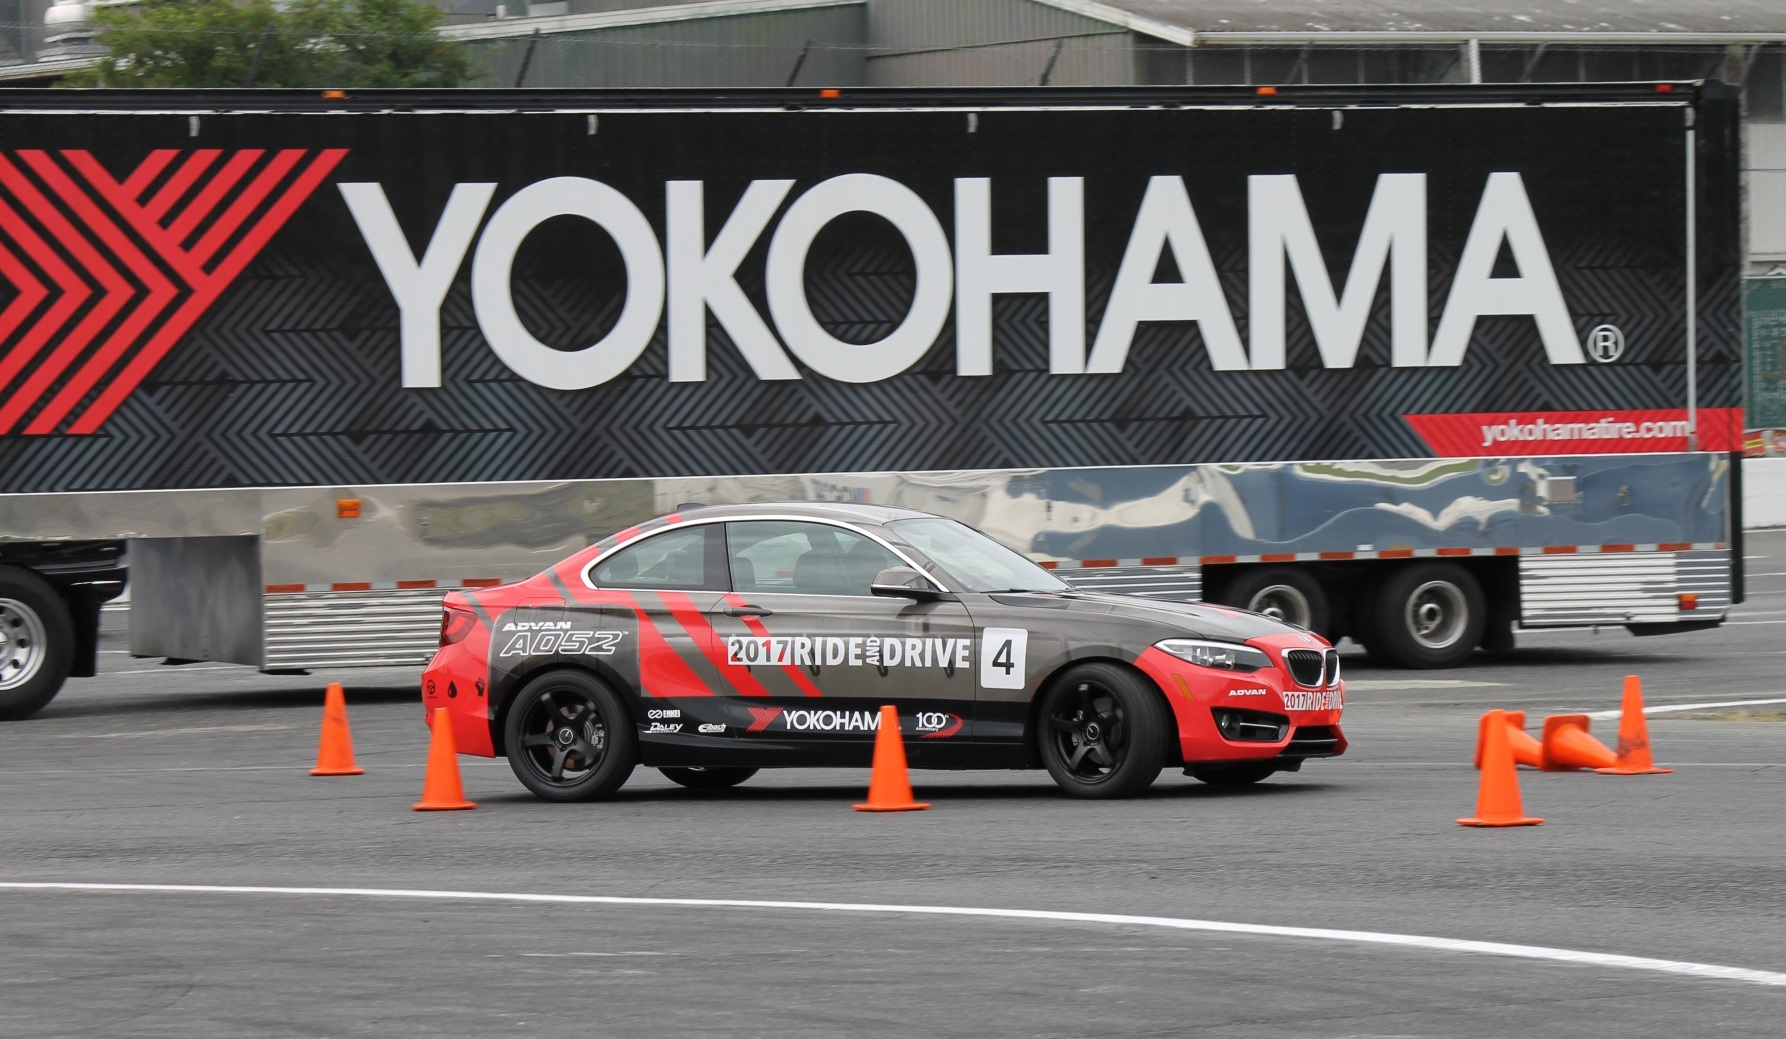 Yokohama's 2017 Ride and Drive Dealer Training  Program Hits the Road